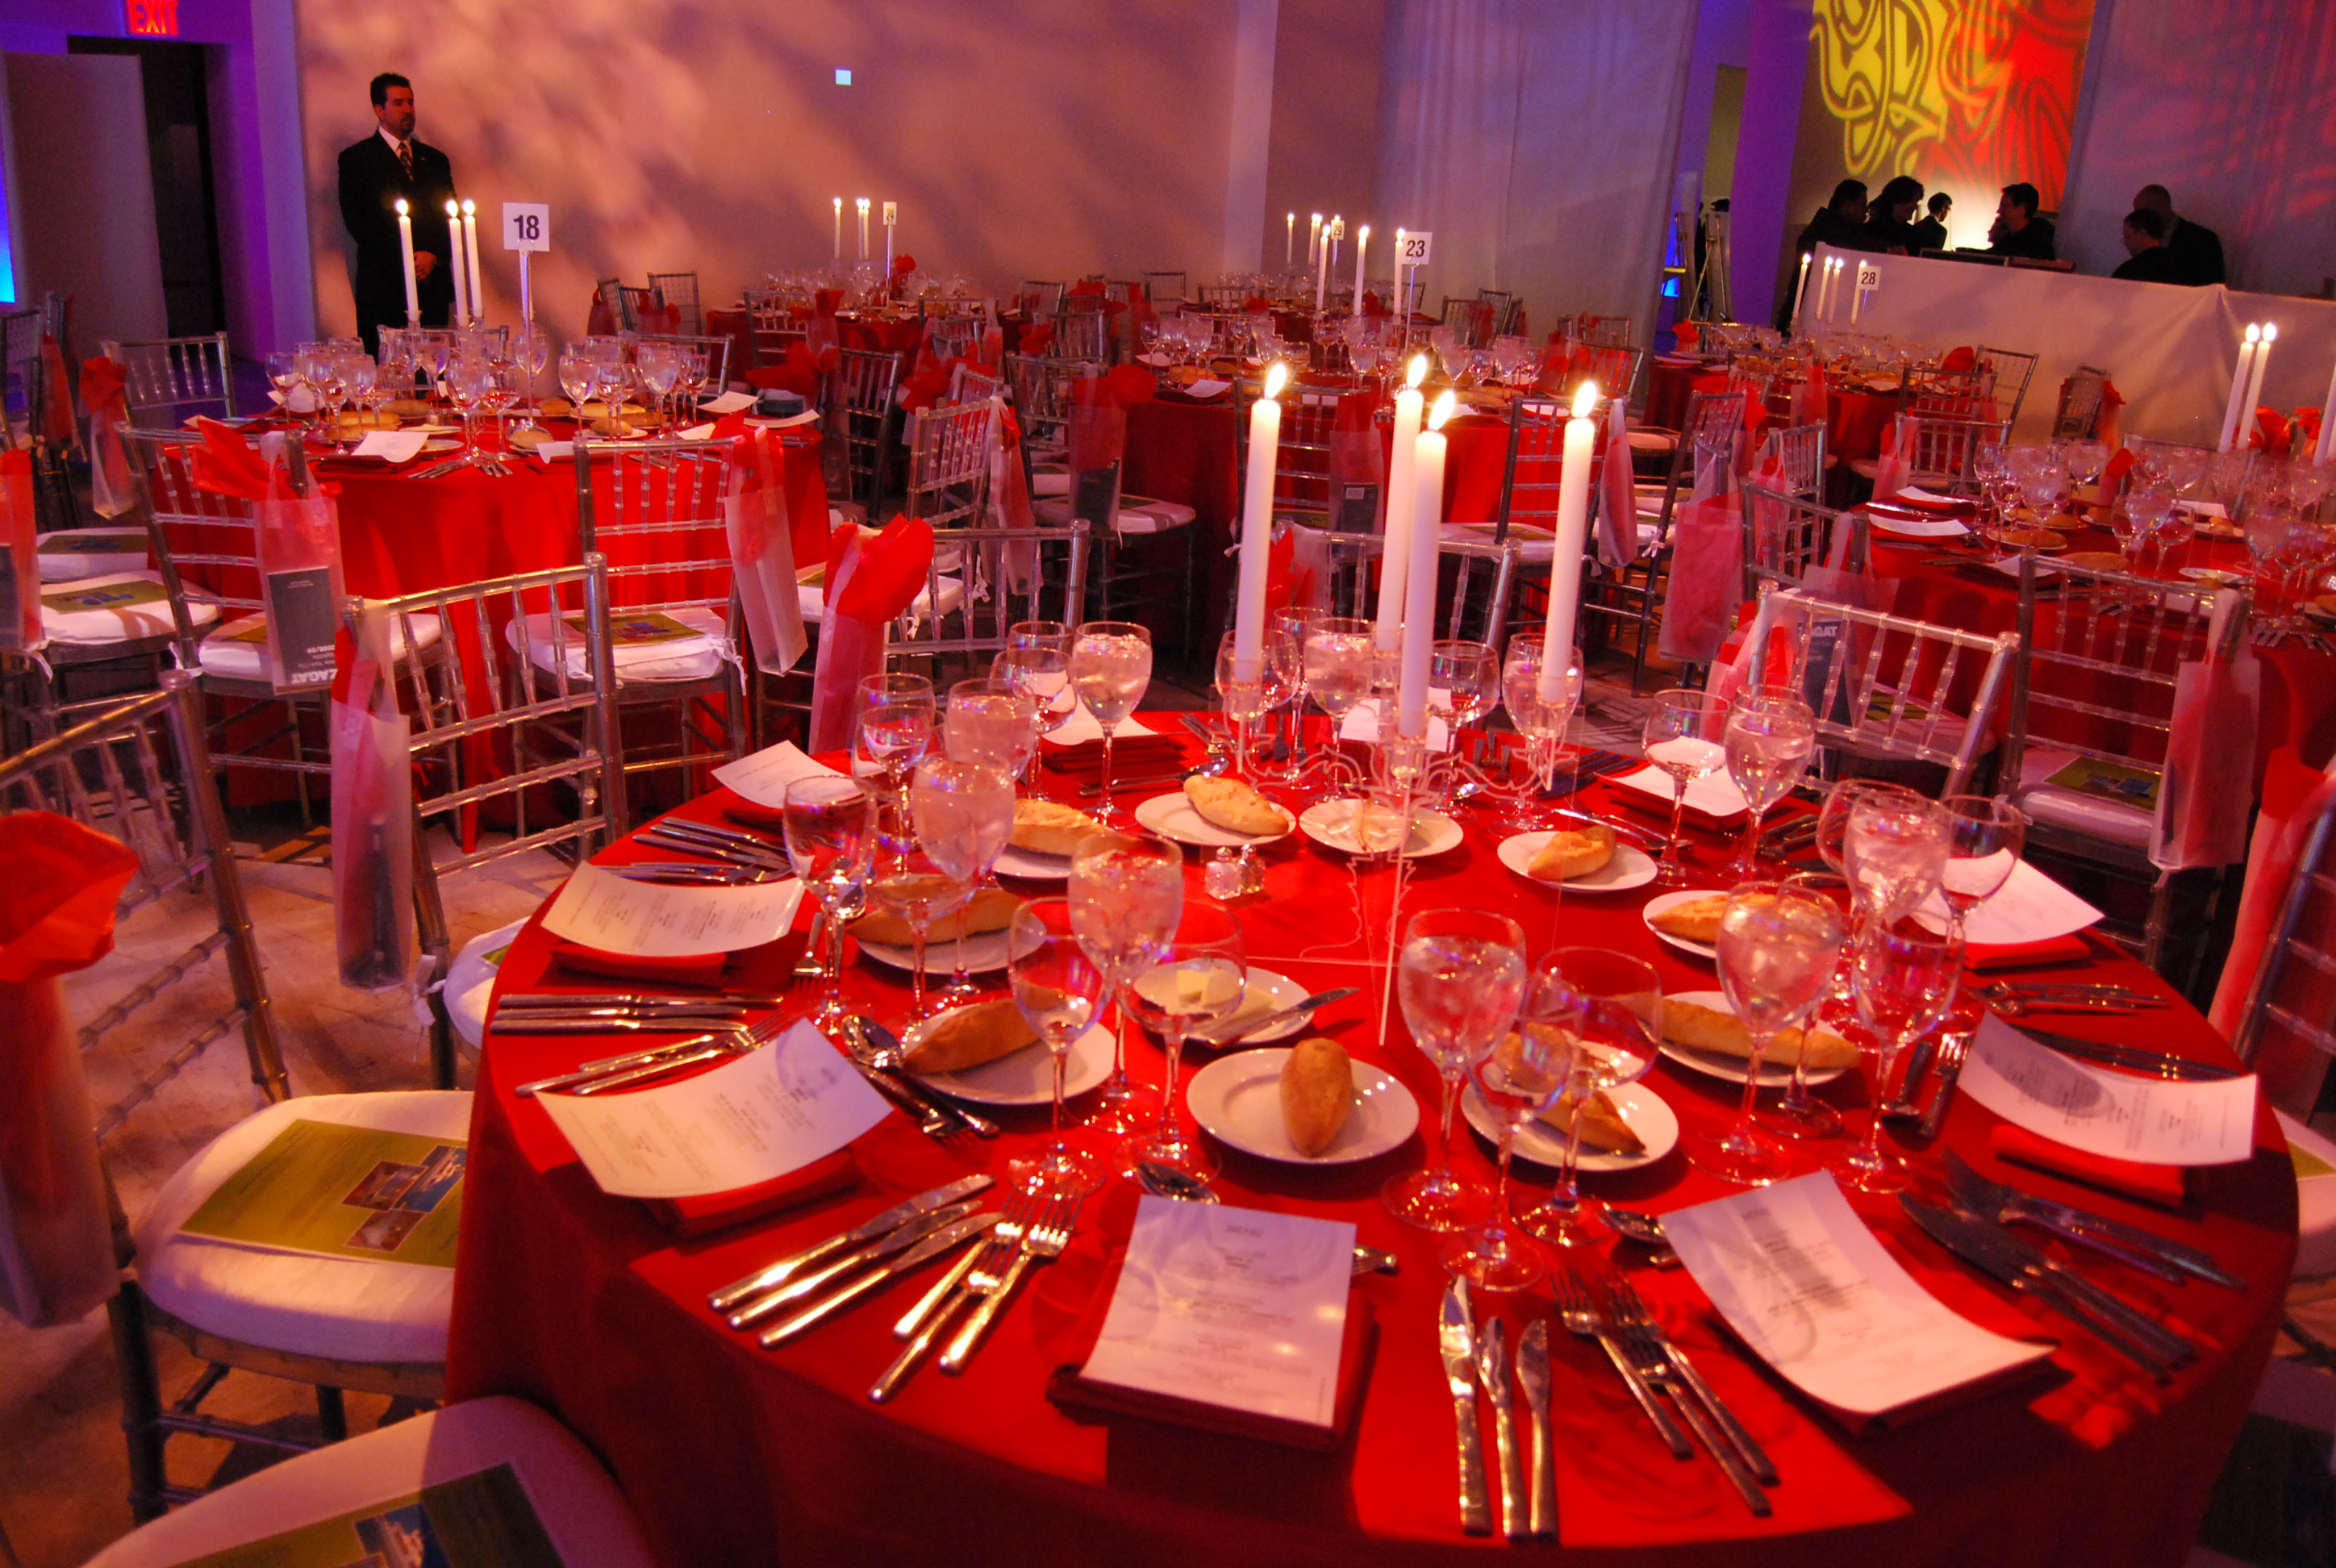 File:GMHC 2009 Dinner Table.jpg - Wikimedia Commons